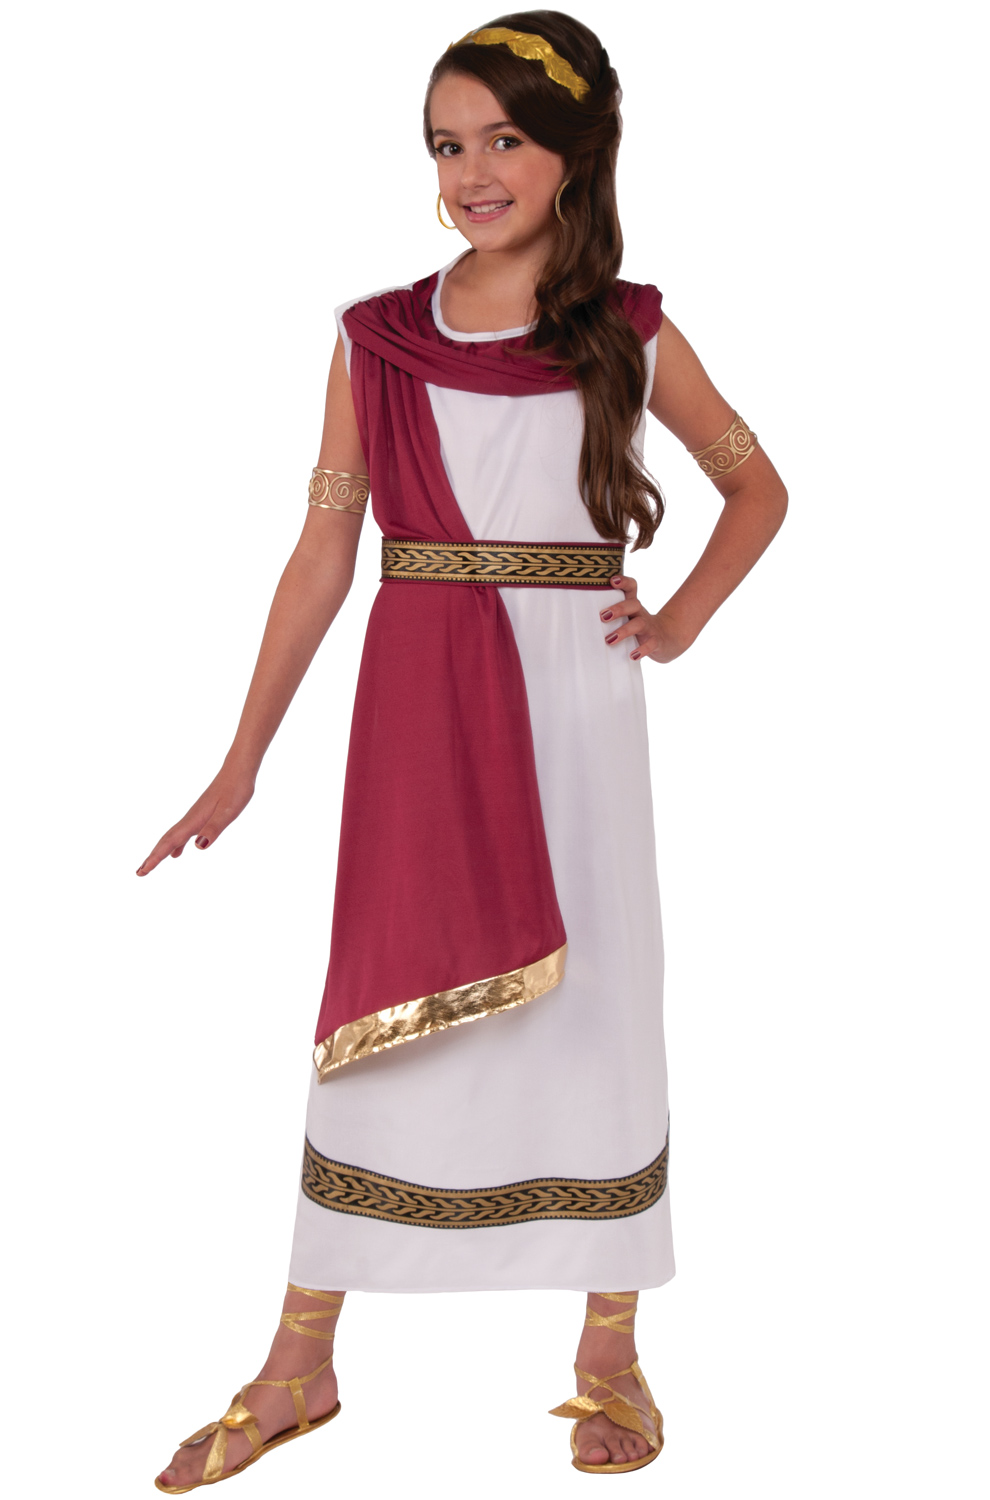 Ruby Greek Goddess Child Costume (Medium) - PureCostumes.com